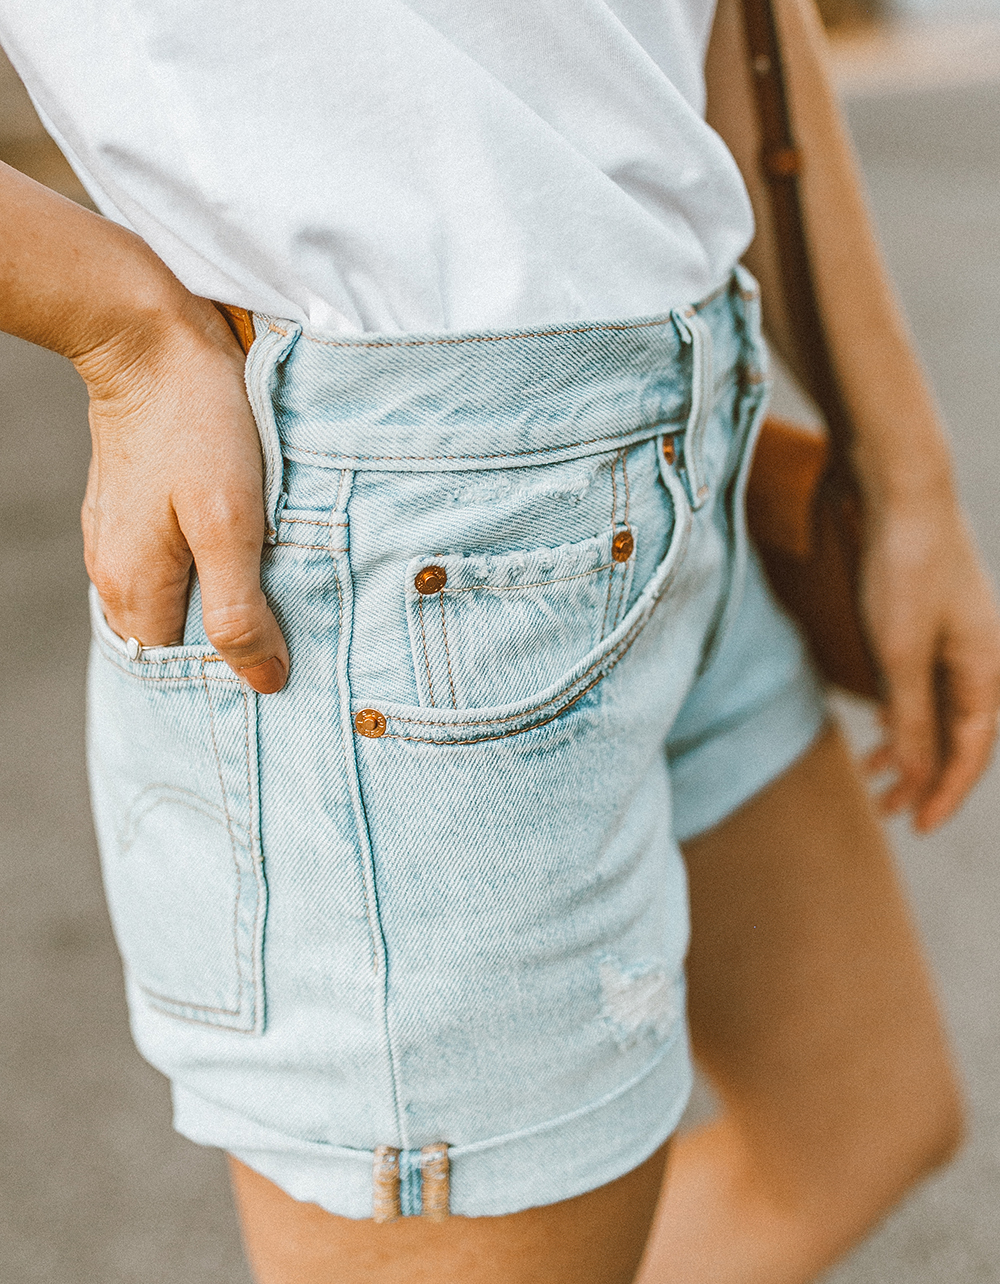 livvyland blog olivia watson austin texas fashion style blogger what to wear levis denim shorts festival outfit idea 9 - Summer time In Levi's